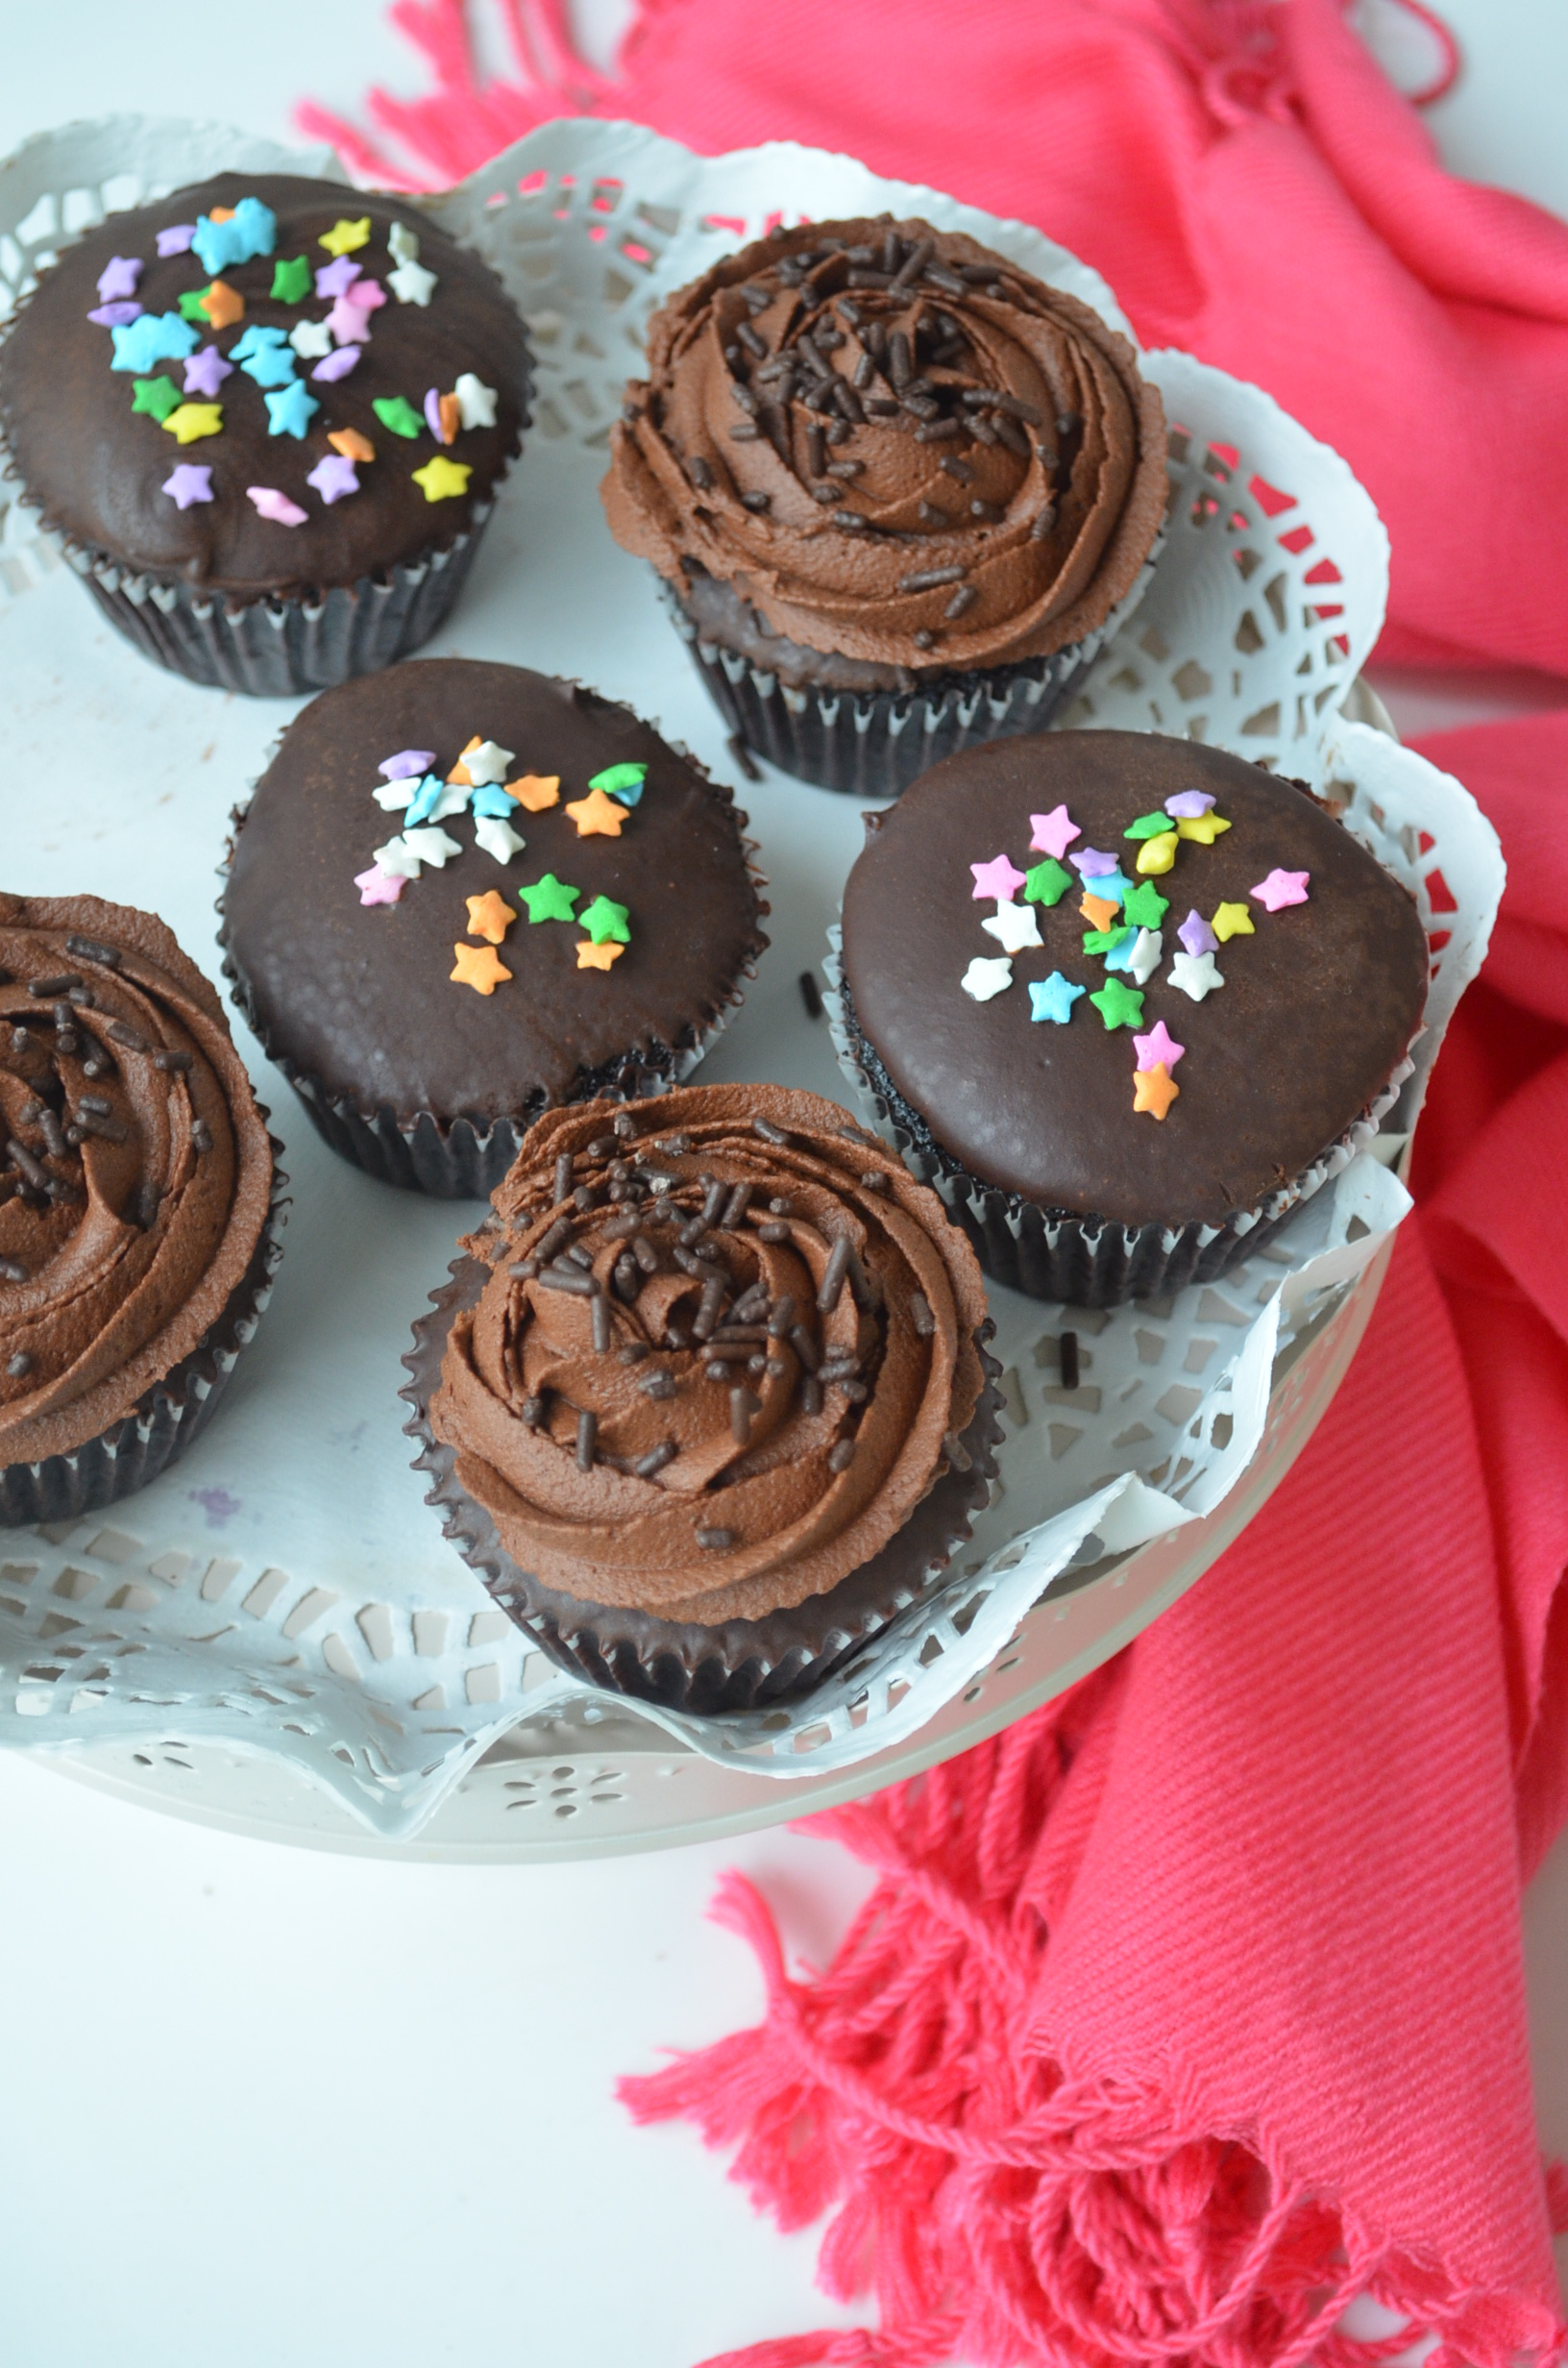 Simple Chocolate Cupcake with Chocolate Ganache Frosting